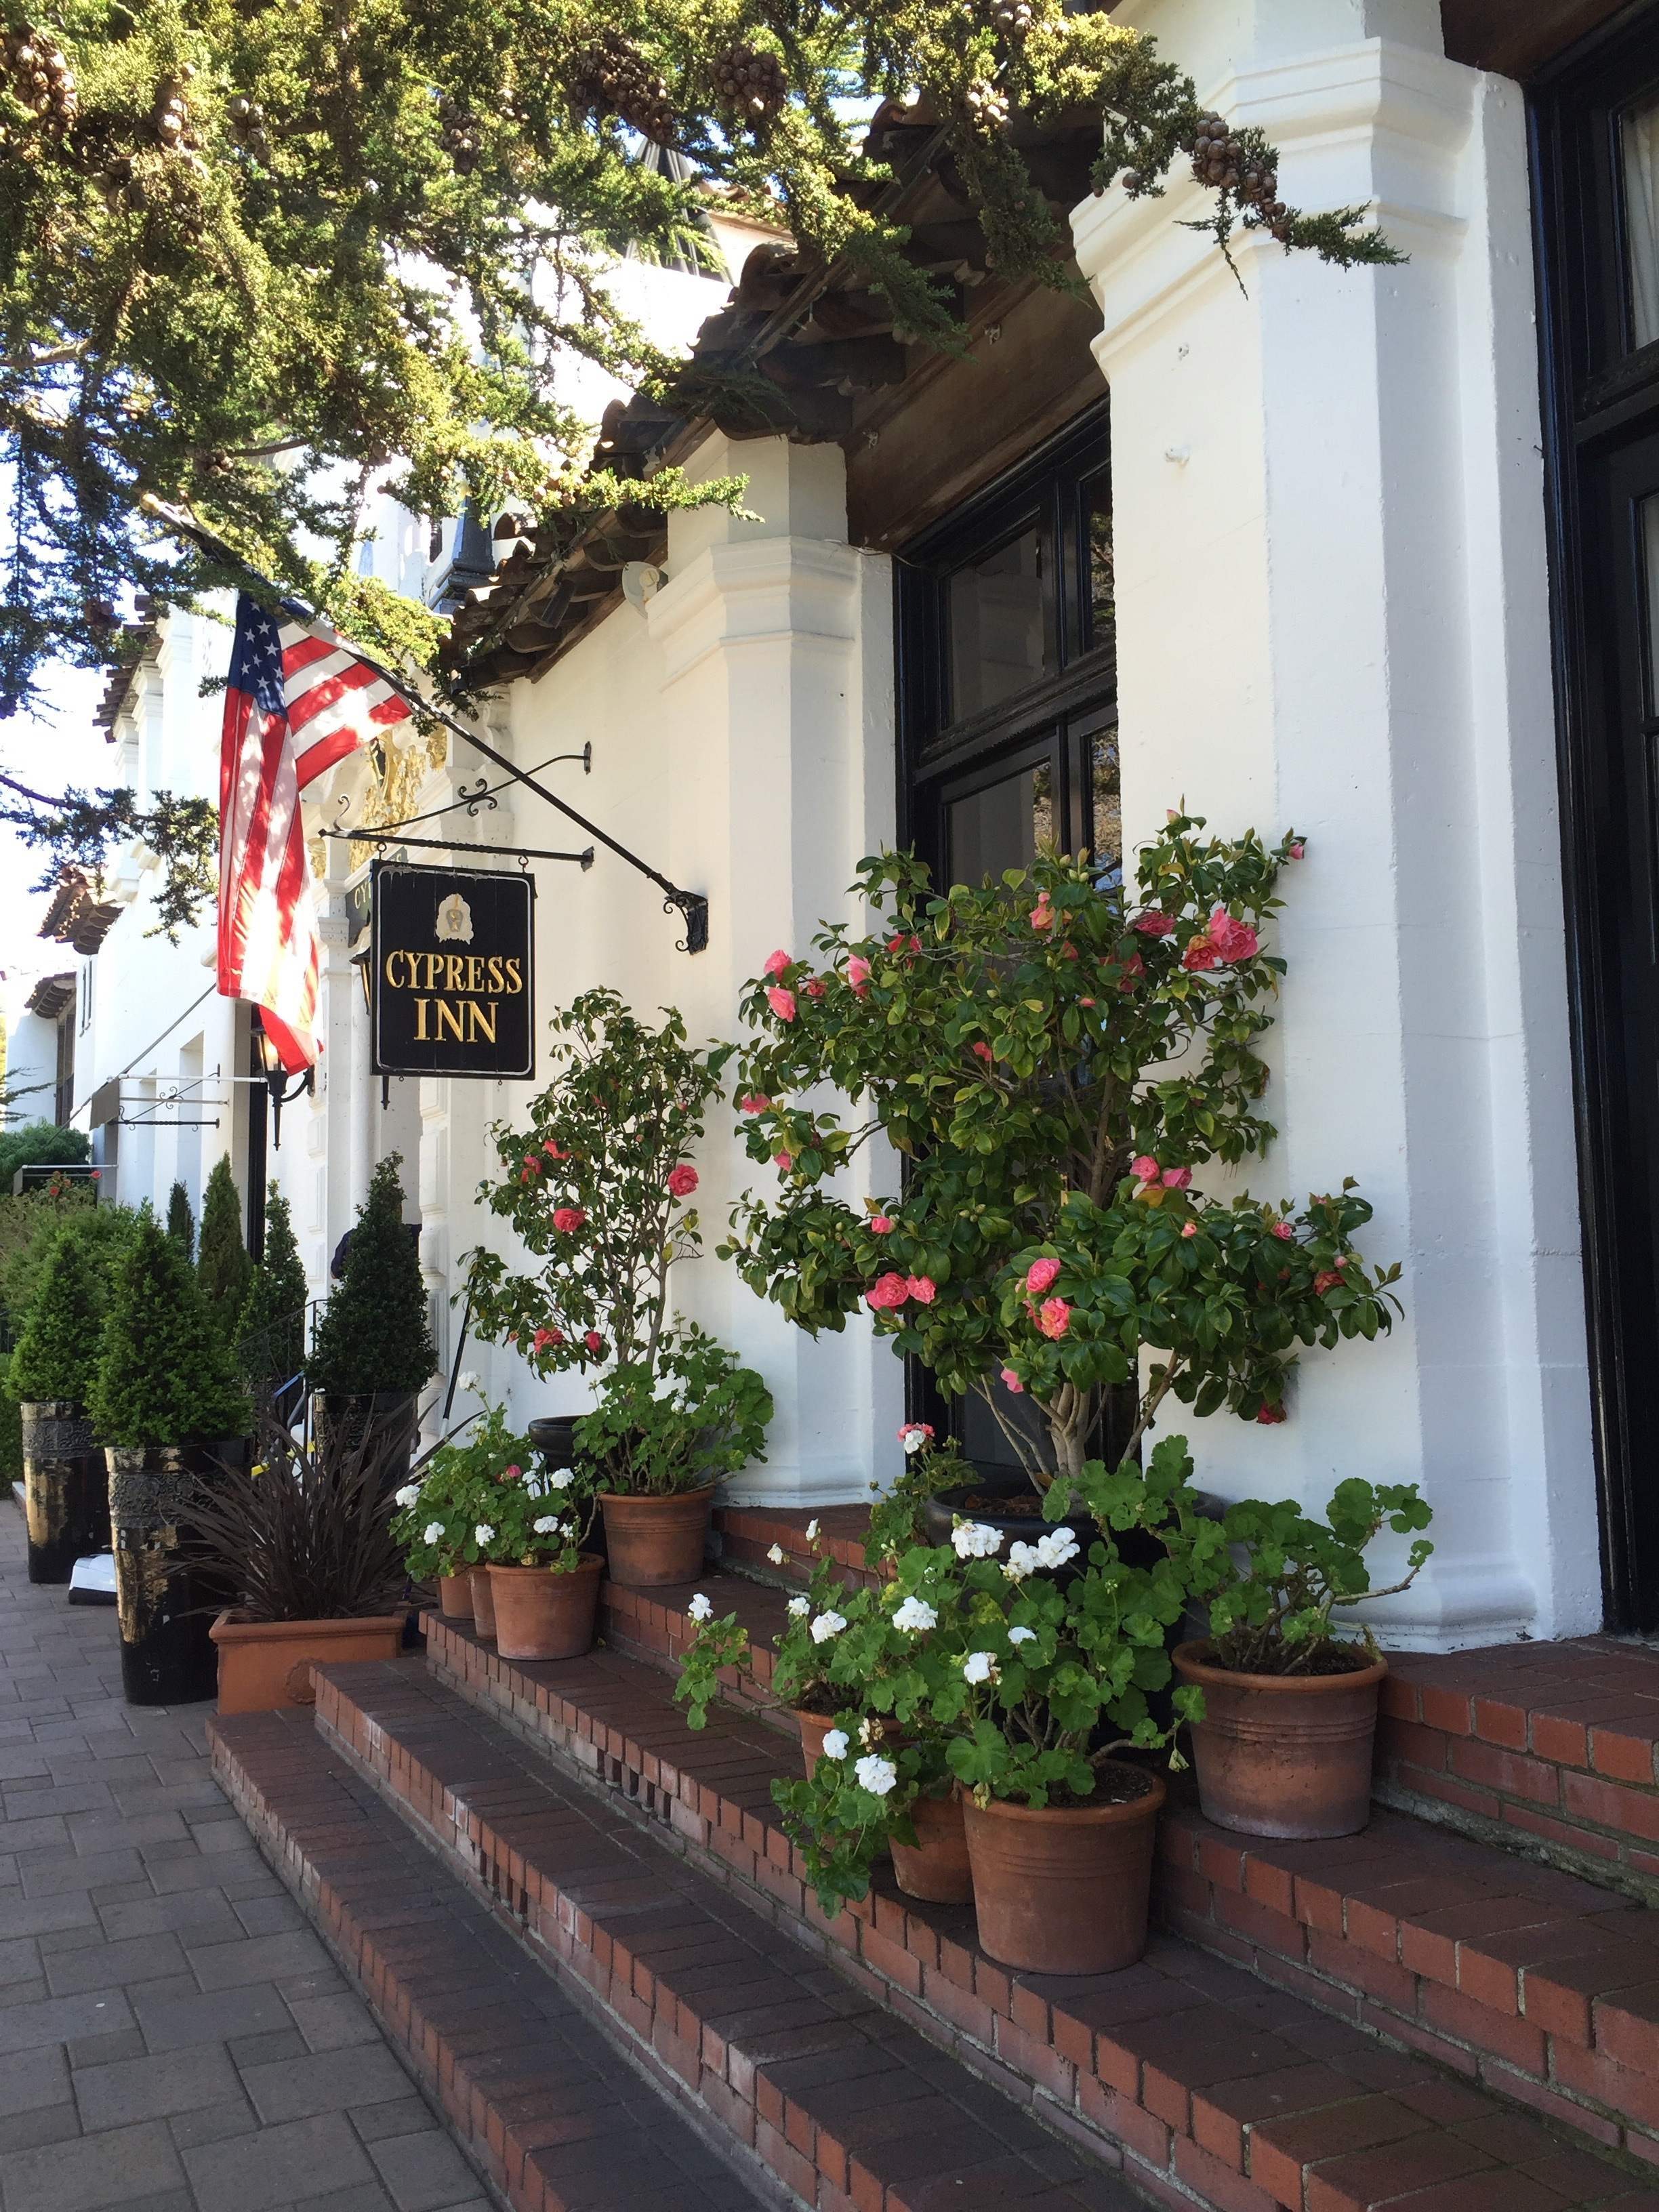 Cypress Inn - Owned by Doris Day. Thoroughly enjoyed our stay here. Courtyard style hotel, spacious room and dog friendly!